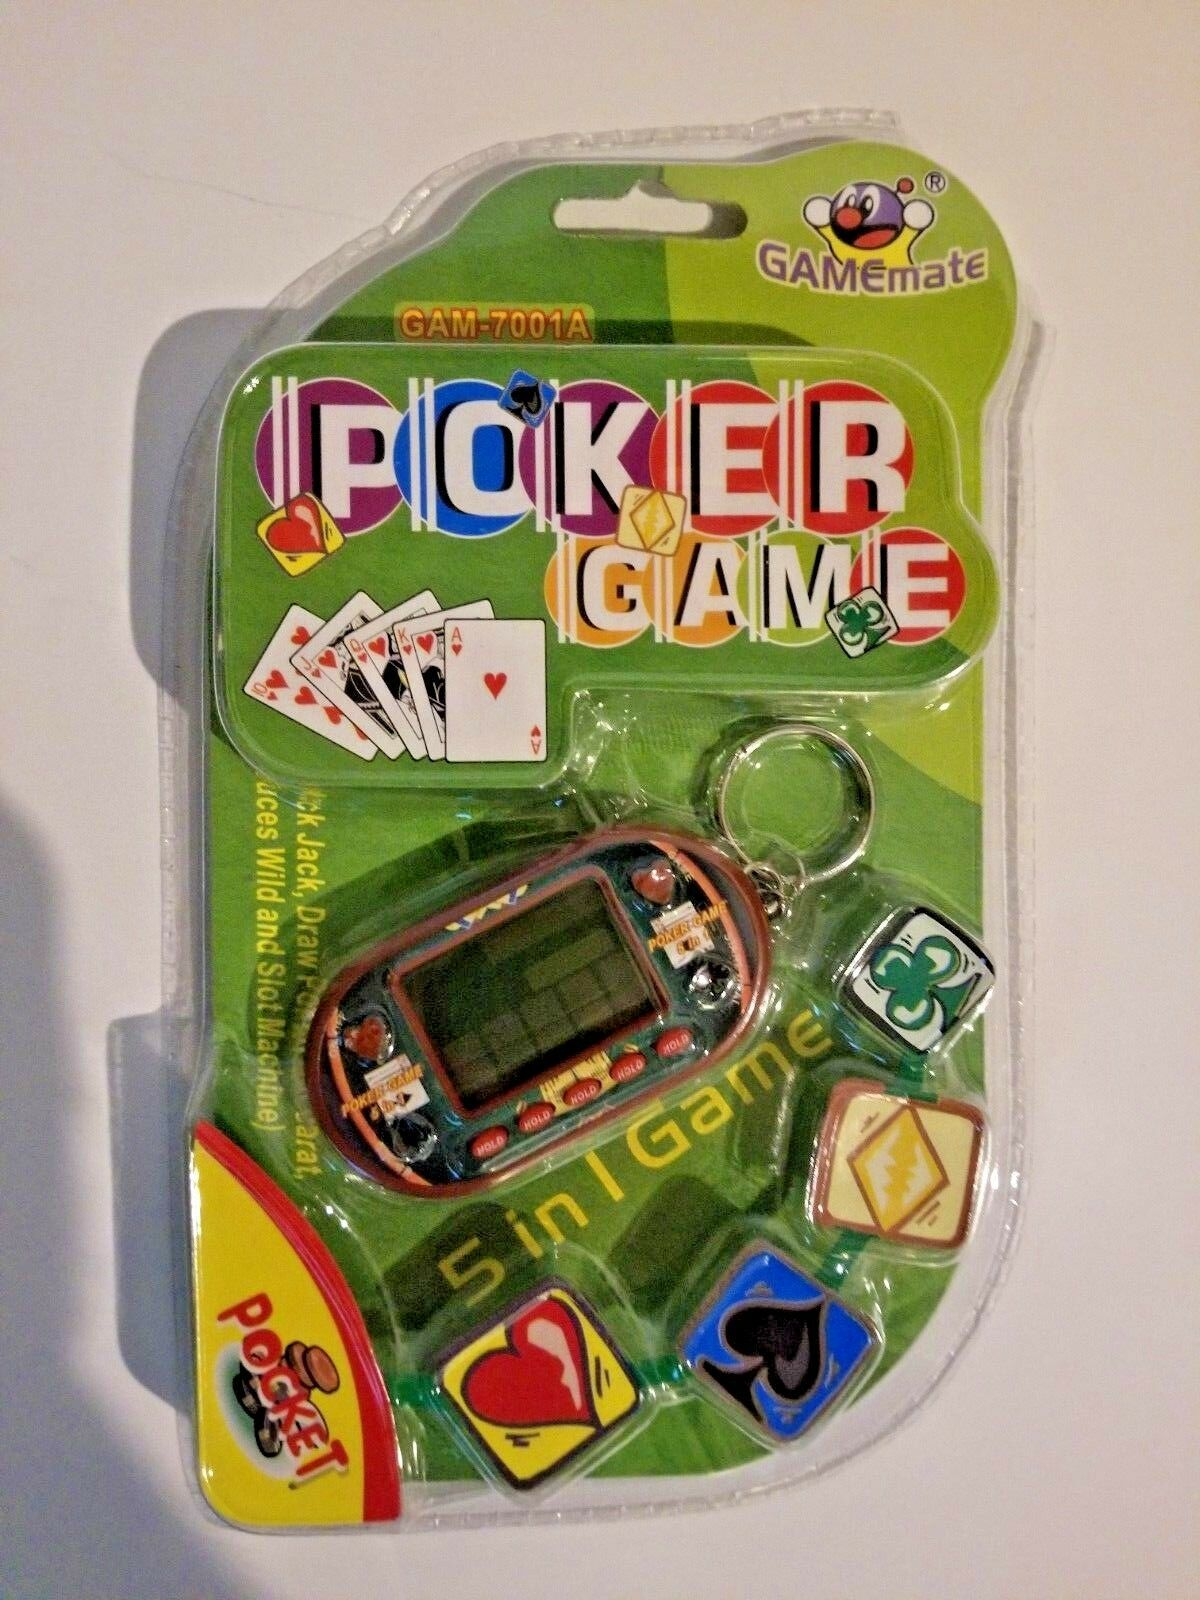 5 in 1 key chain poker game image 1